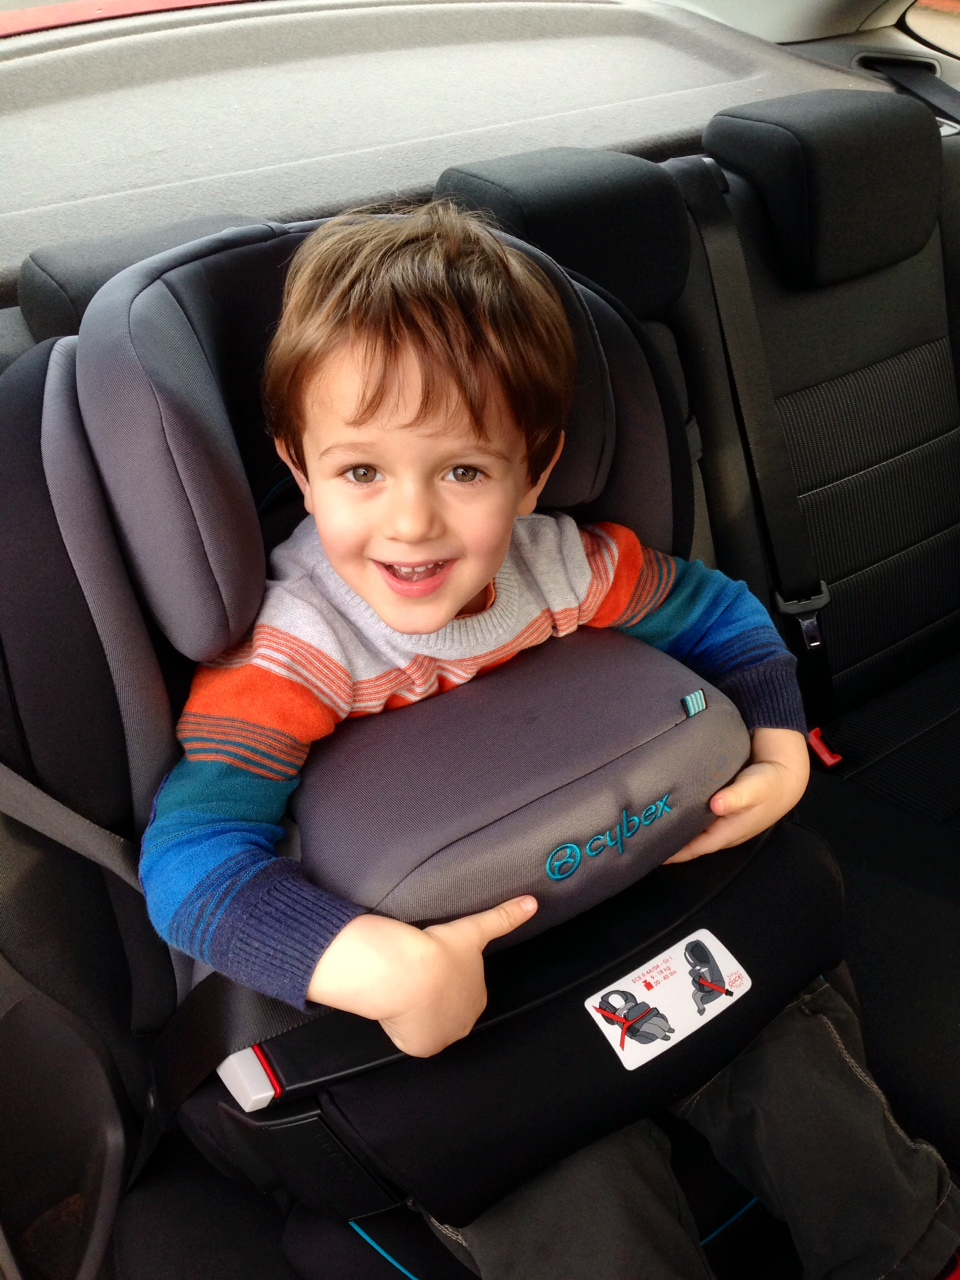 big boy car seat pic pin quality diapers submited images pic 2 fly on audi kid driving in. Black Bedroom Furniture Sets. Home Design Ideas